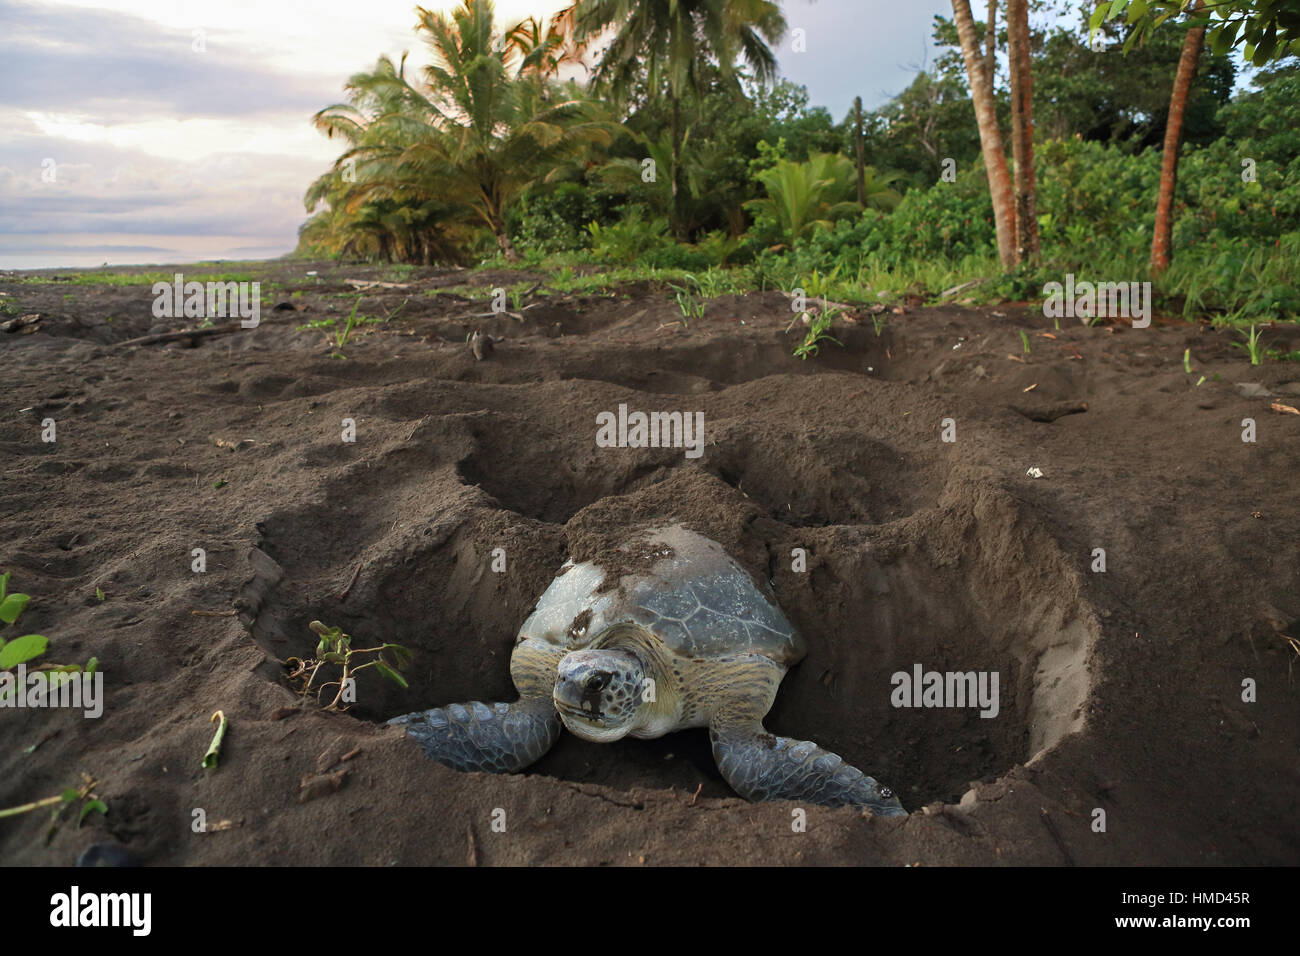 Female green turtle (Chelonia mydas) covering her nest at sunrise in Tortuguero National Park, Costa Rica. - Stock Image